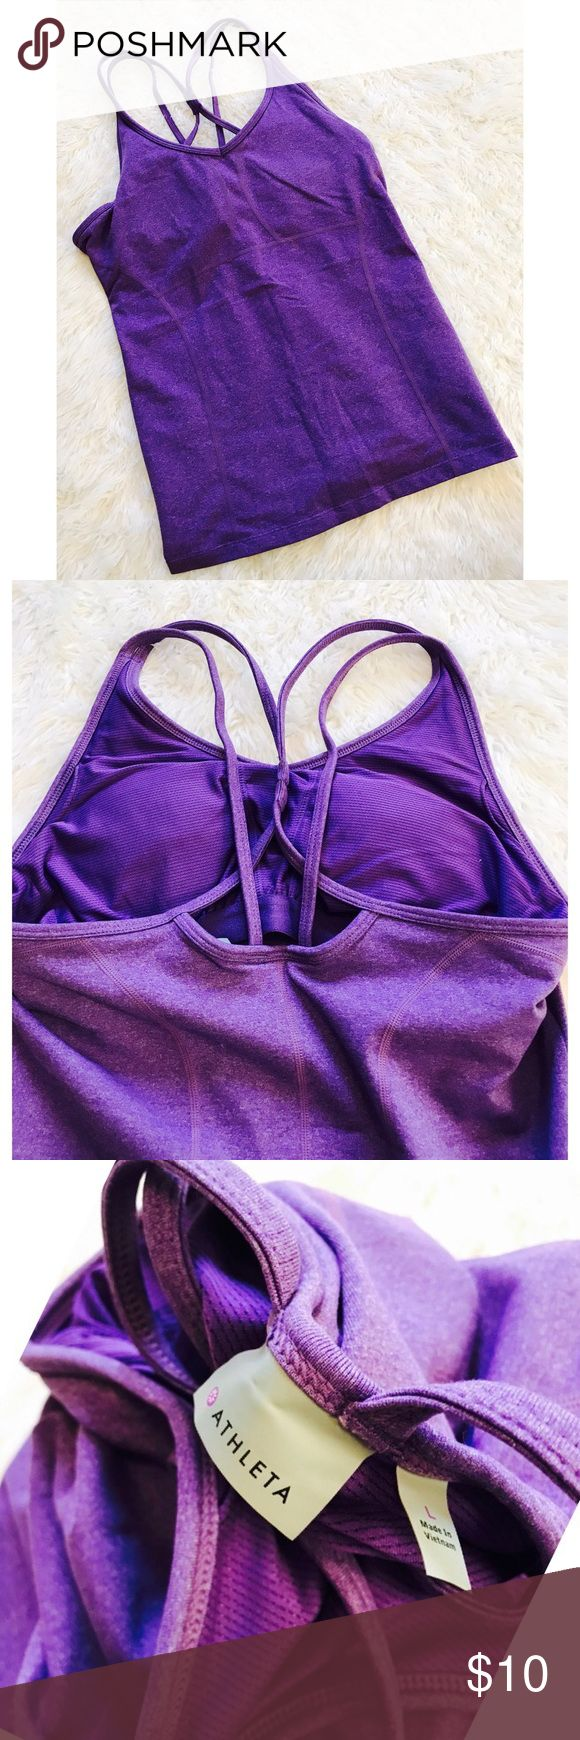 Purple Athleta Workout Tank Has Strappy back • purple • built in Bra • ships immediately Athleta Tops Tank Tops